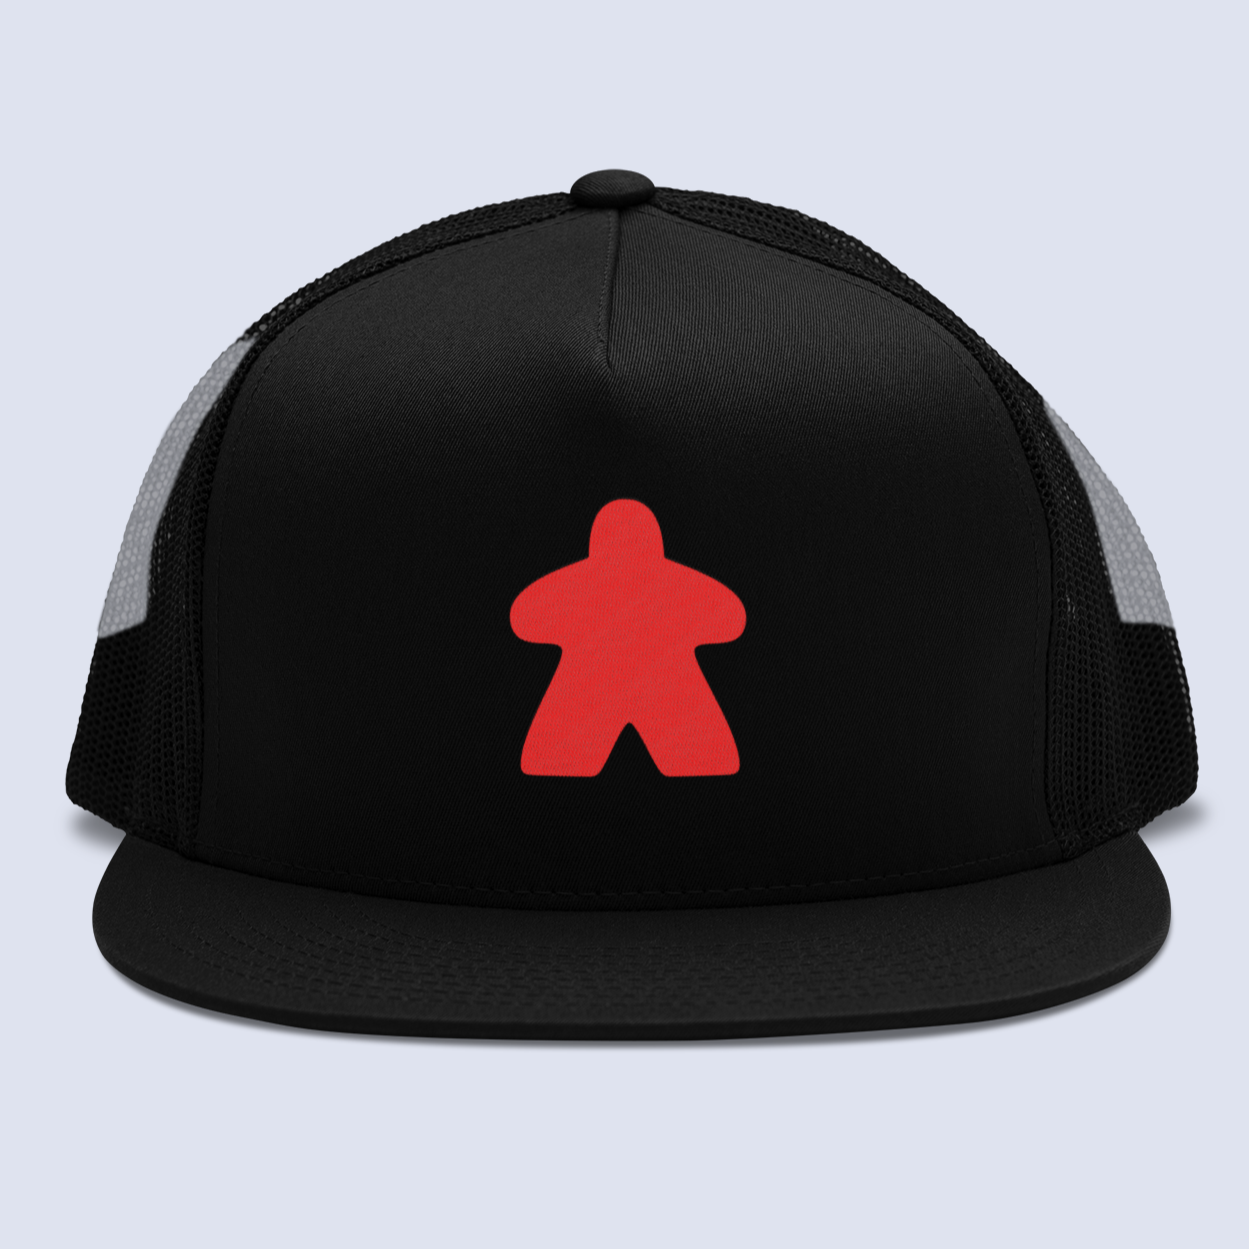 Red Meeple Board Game Flat Bill Trucker Hat